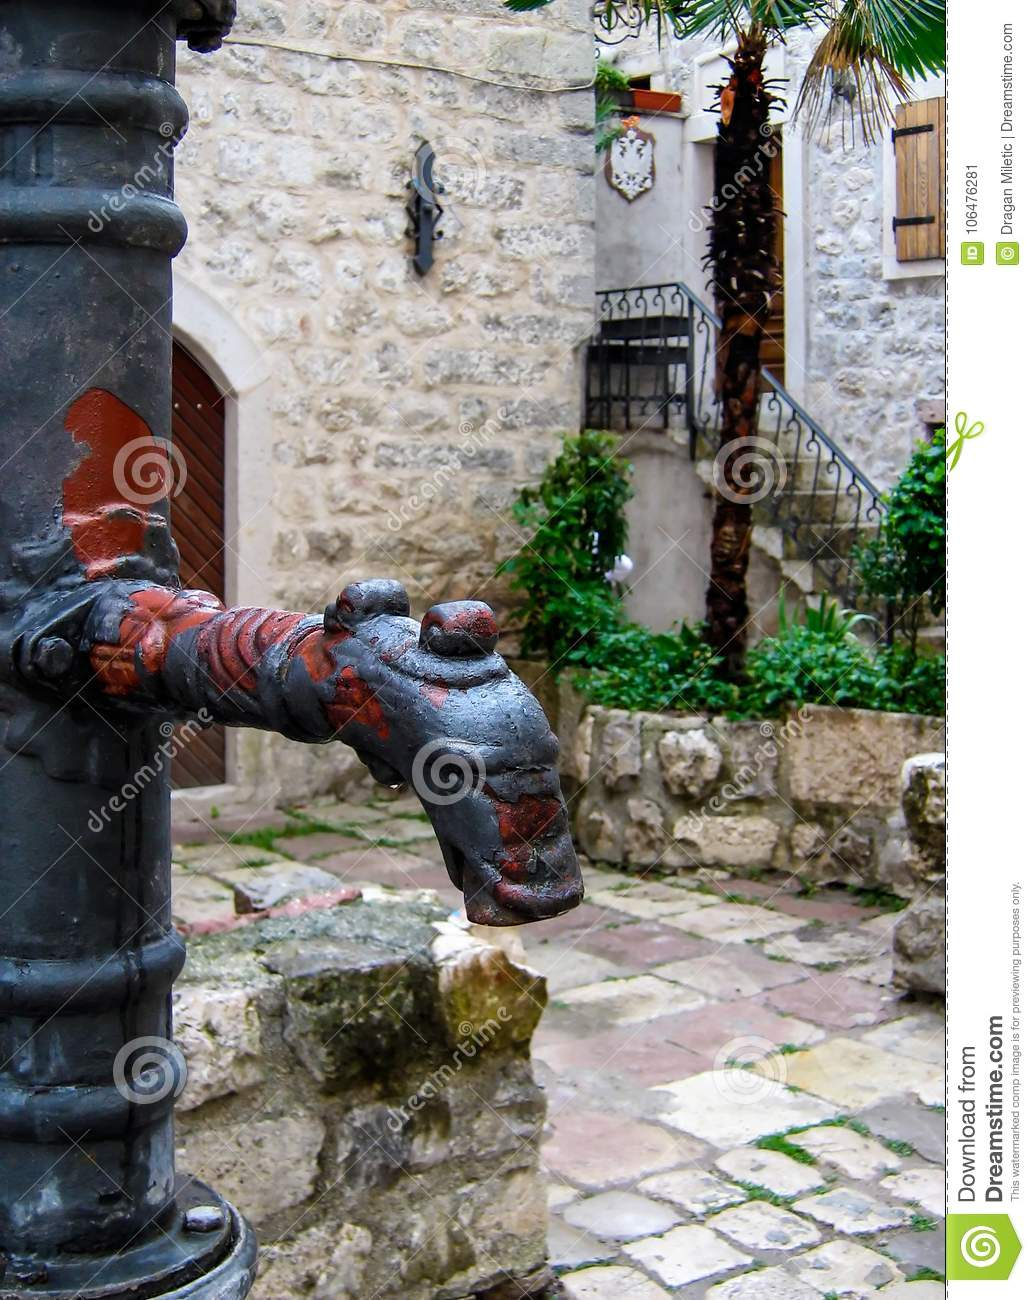 Old metal water pump - drinking fountain